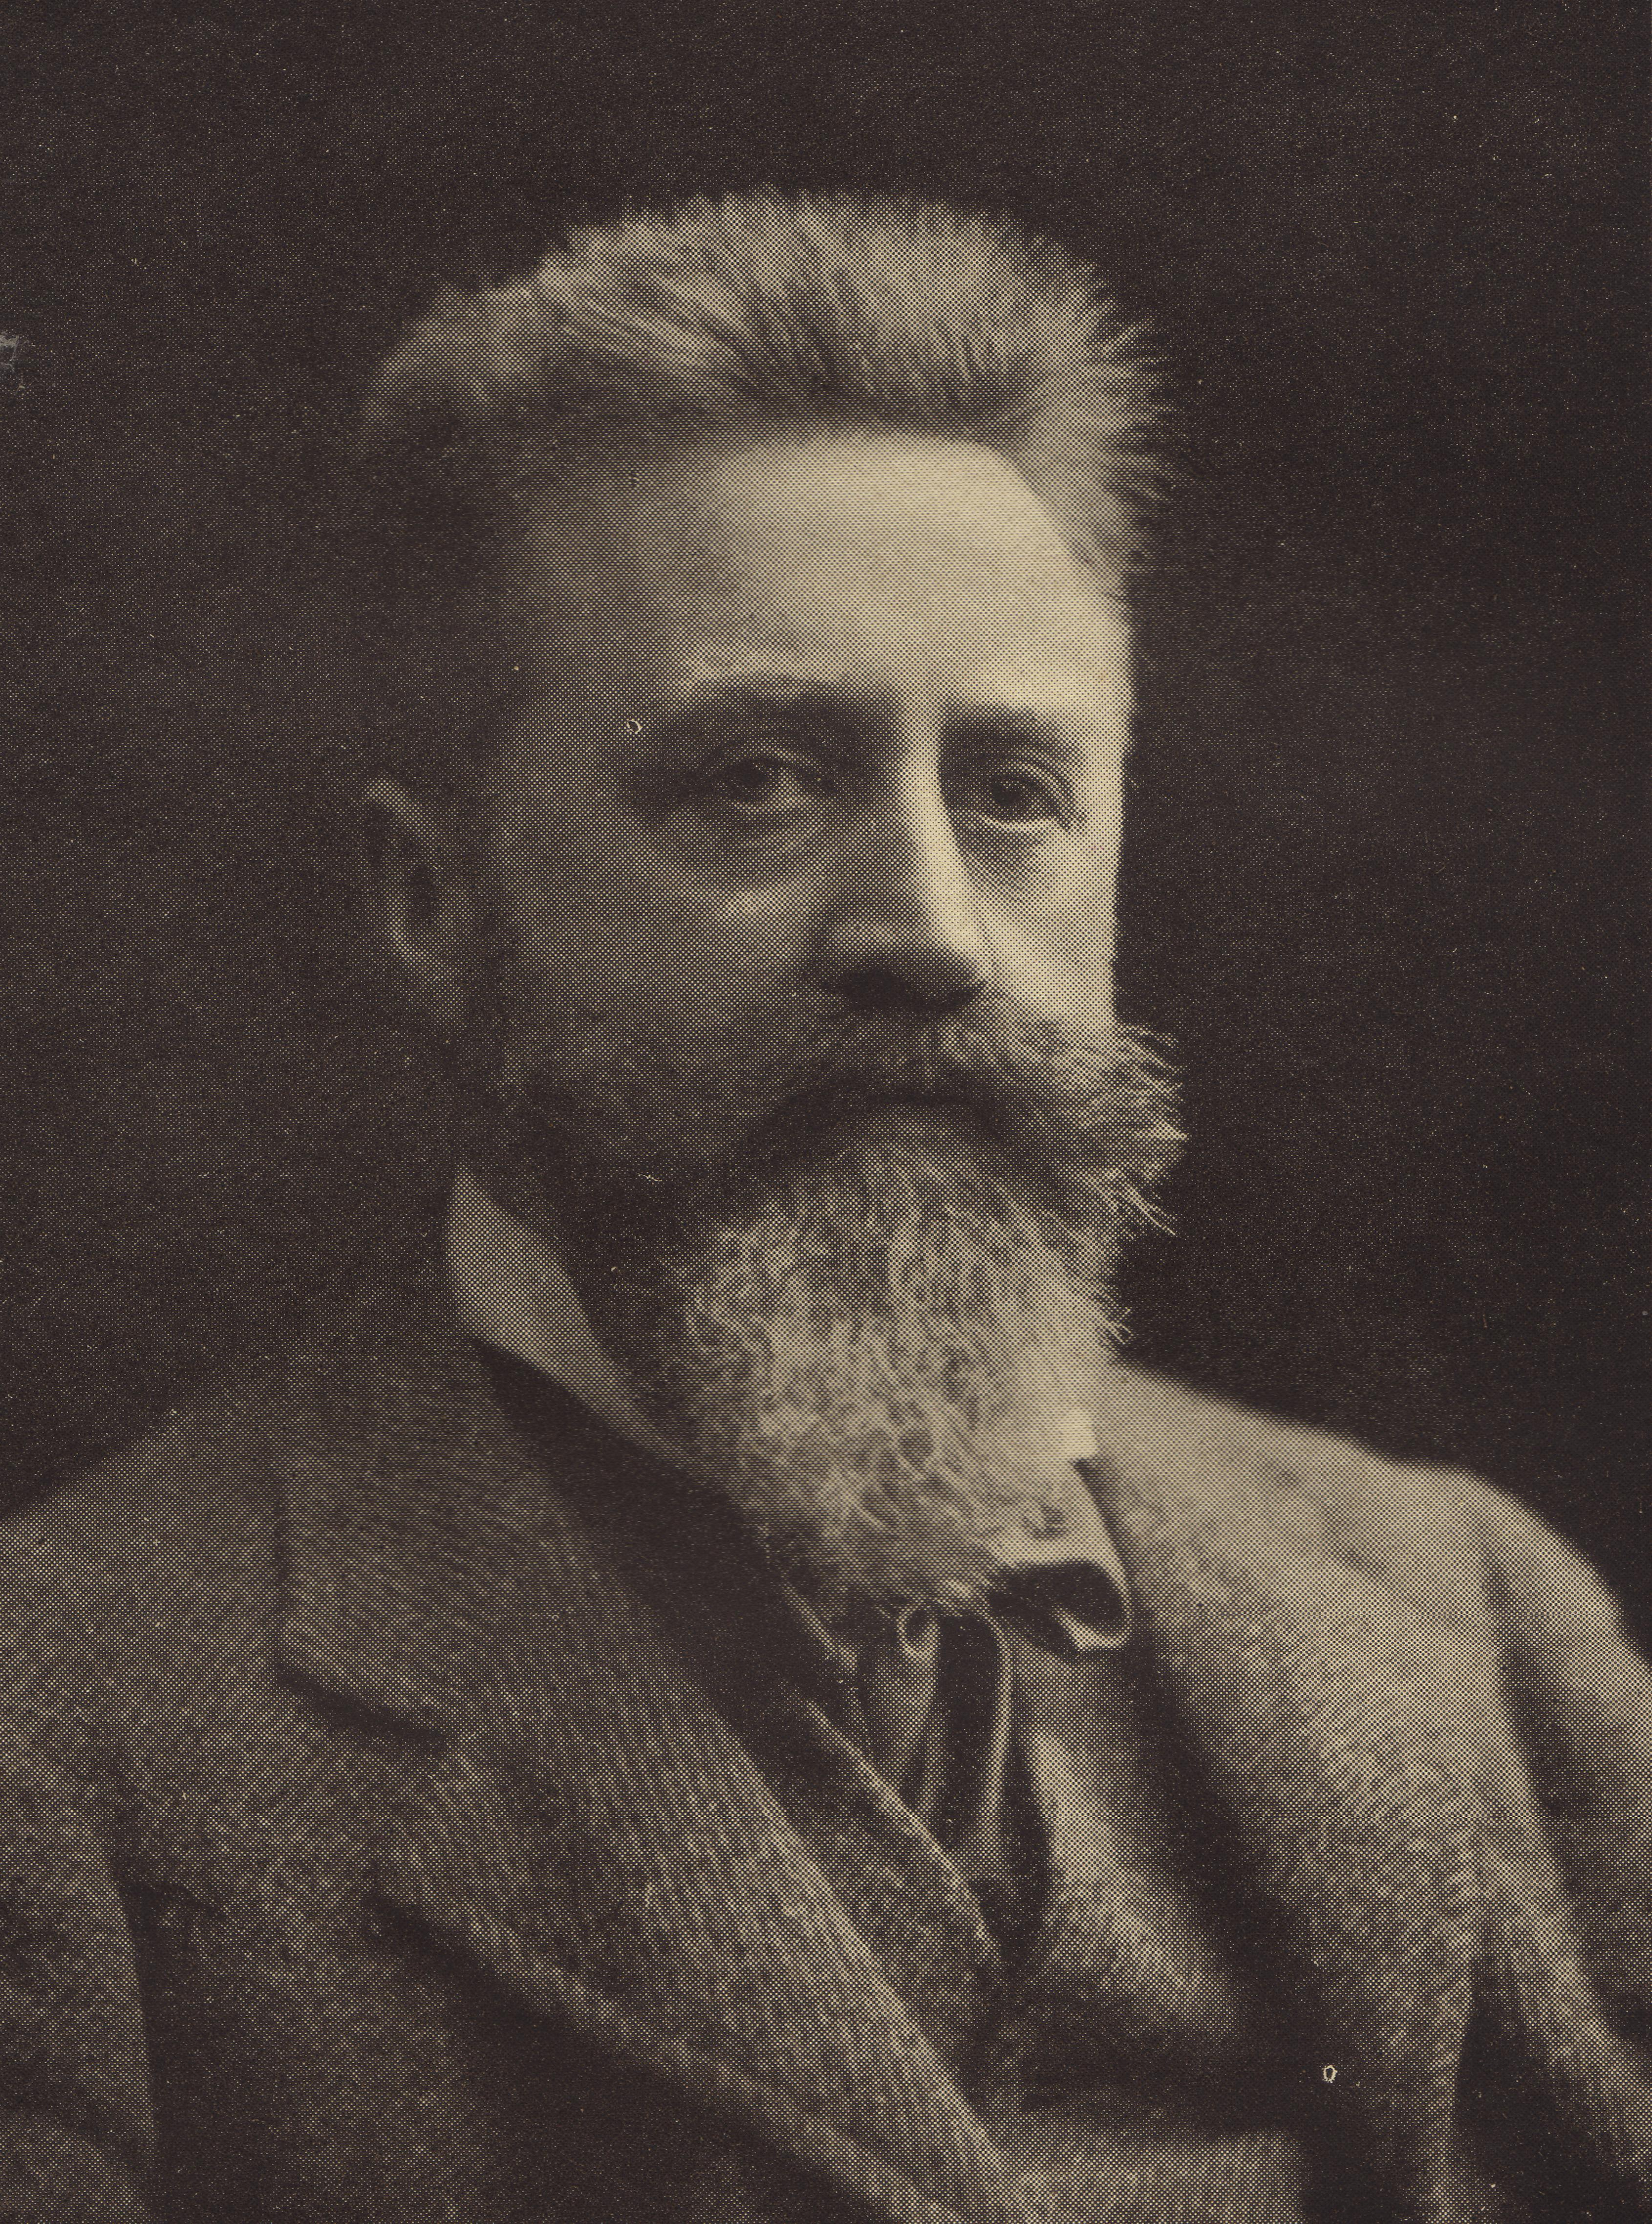 Granville Bantock (picture first published 1913)